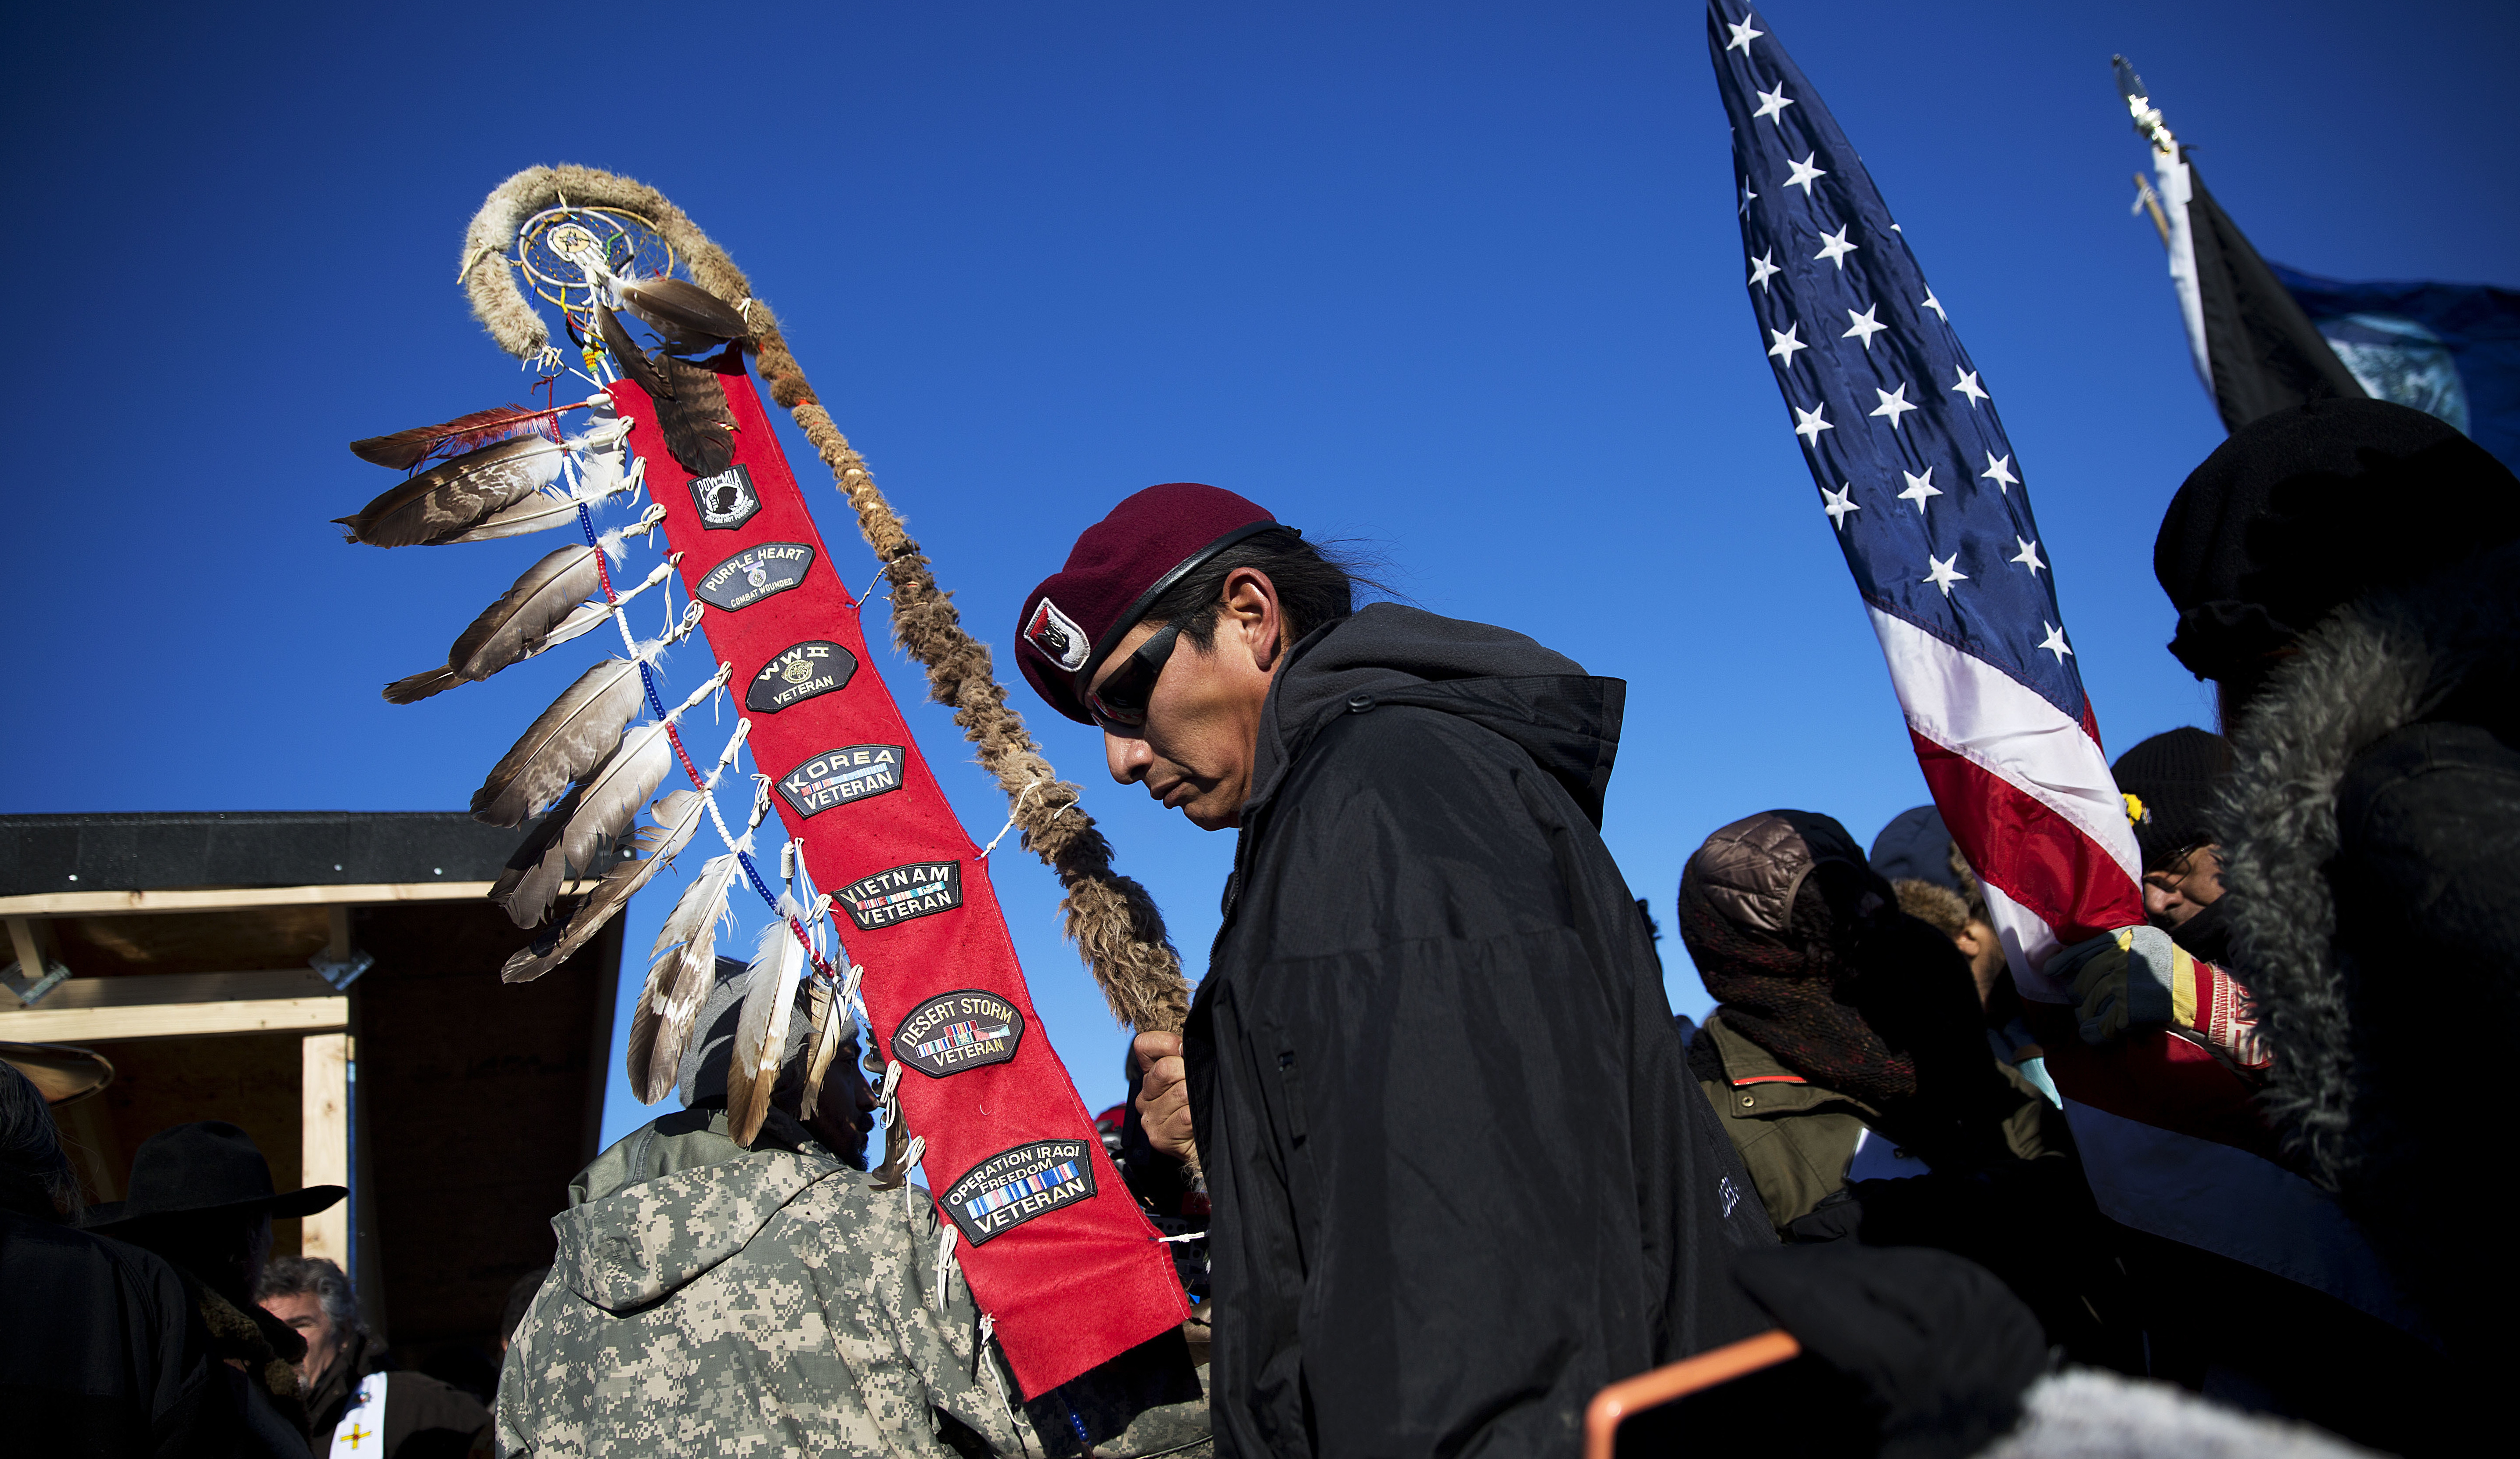 Native Americans serve in the military at a higher percentage than any other ethnicity. (David Goldman/AP)